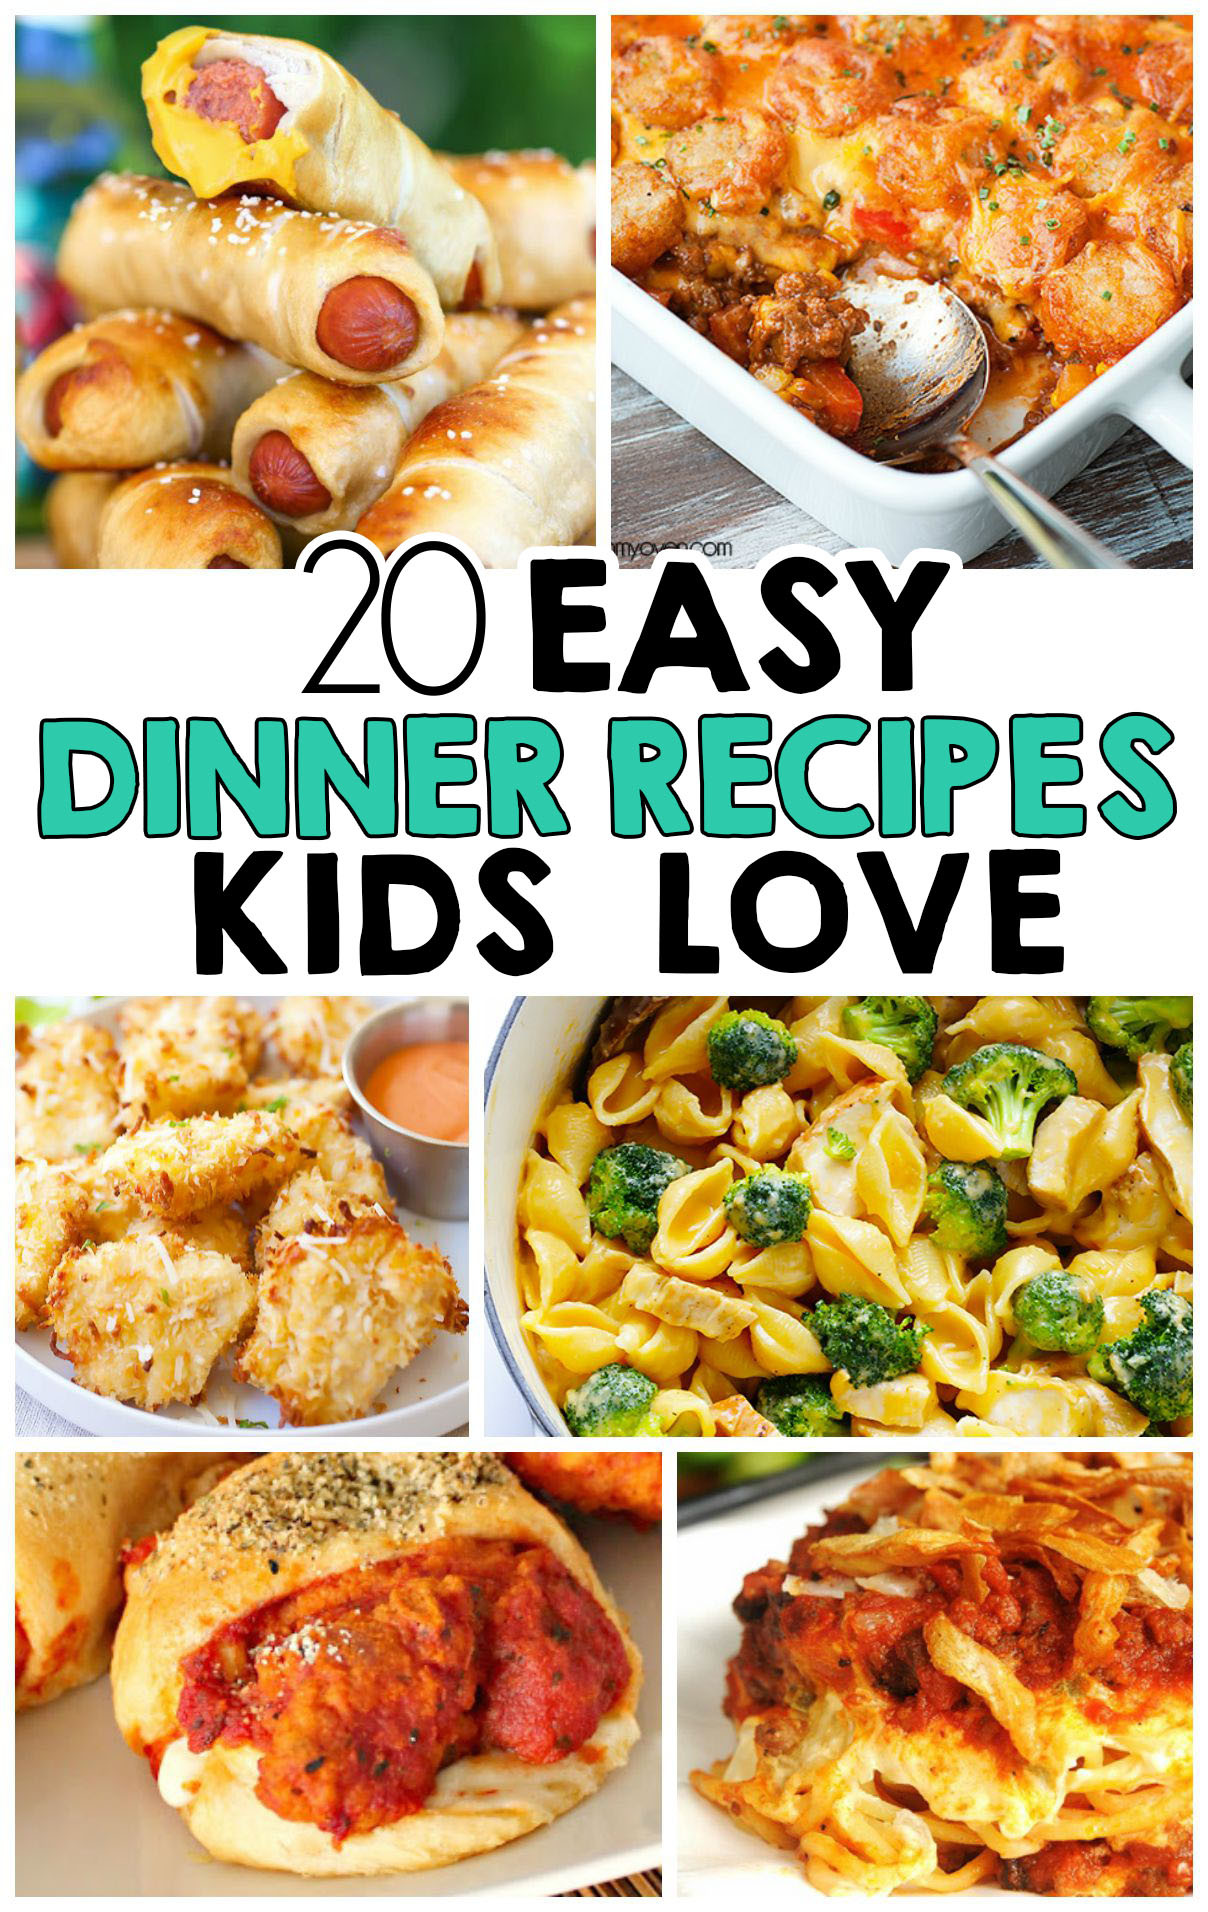 Quick Dinner Ideas For Kids  20 Easy Dinner Recipes That Kids Love I Heart Arts n Crafts